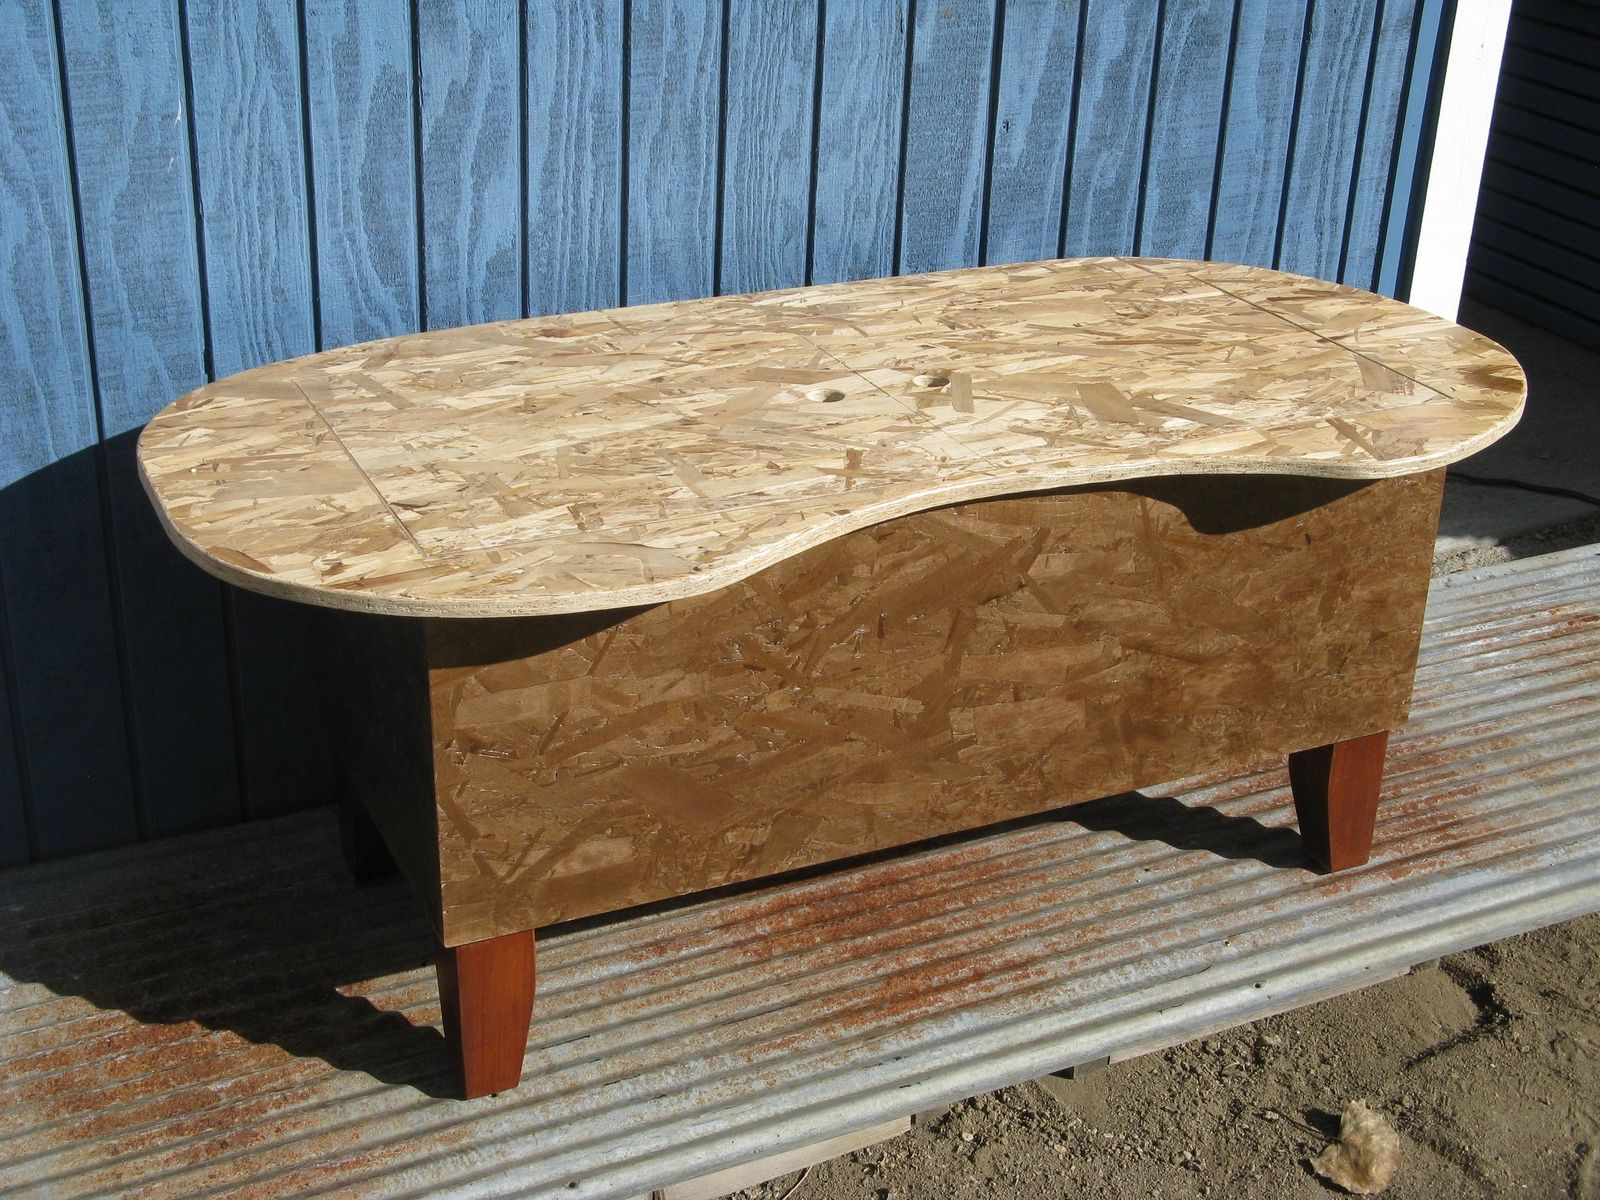 Hand Crafted Bathtub Kidney Bean Shaped Coffee Table By Modular Osb